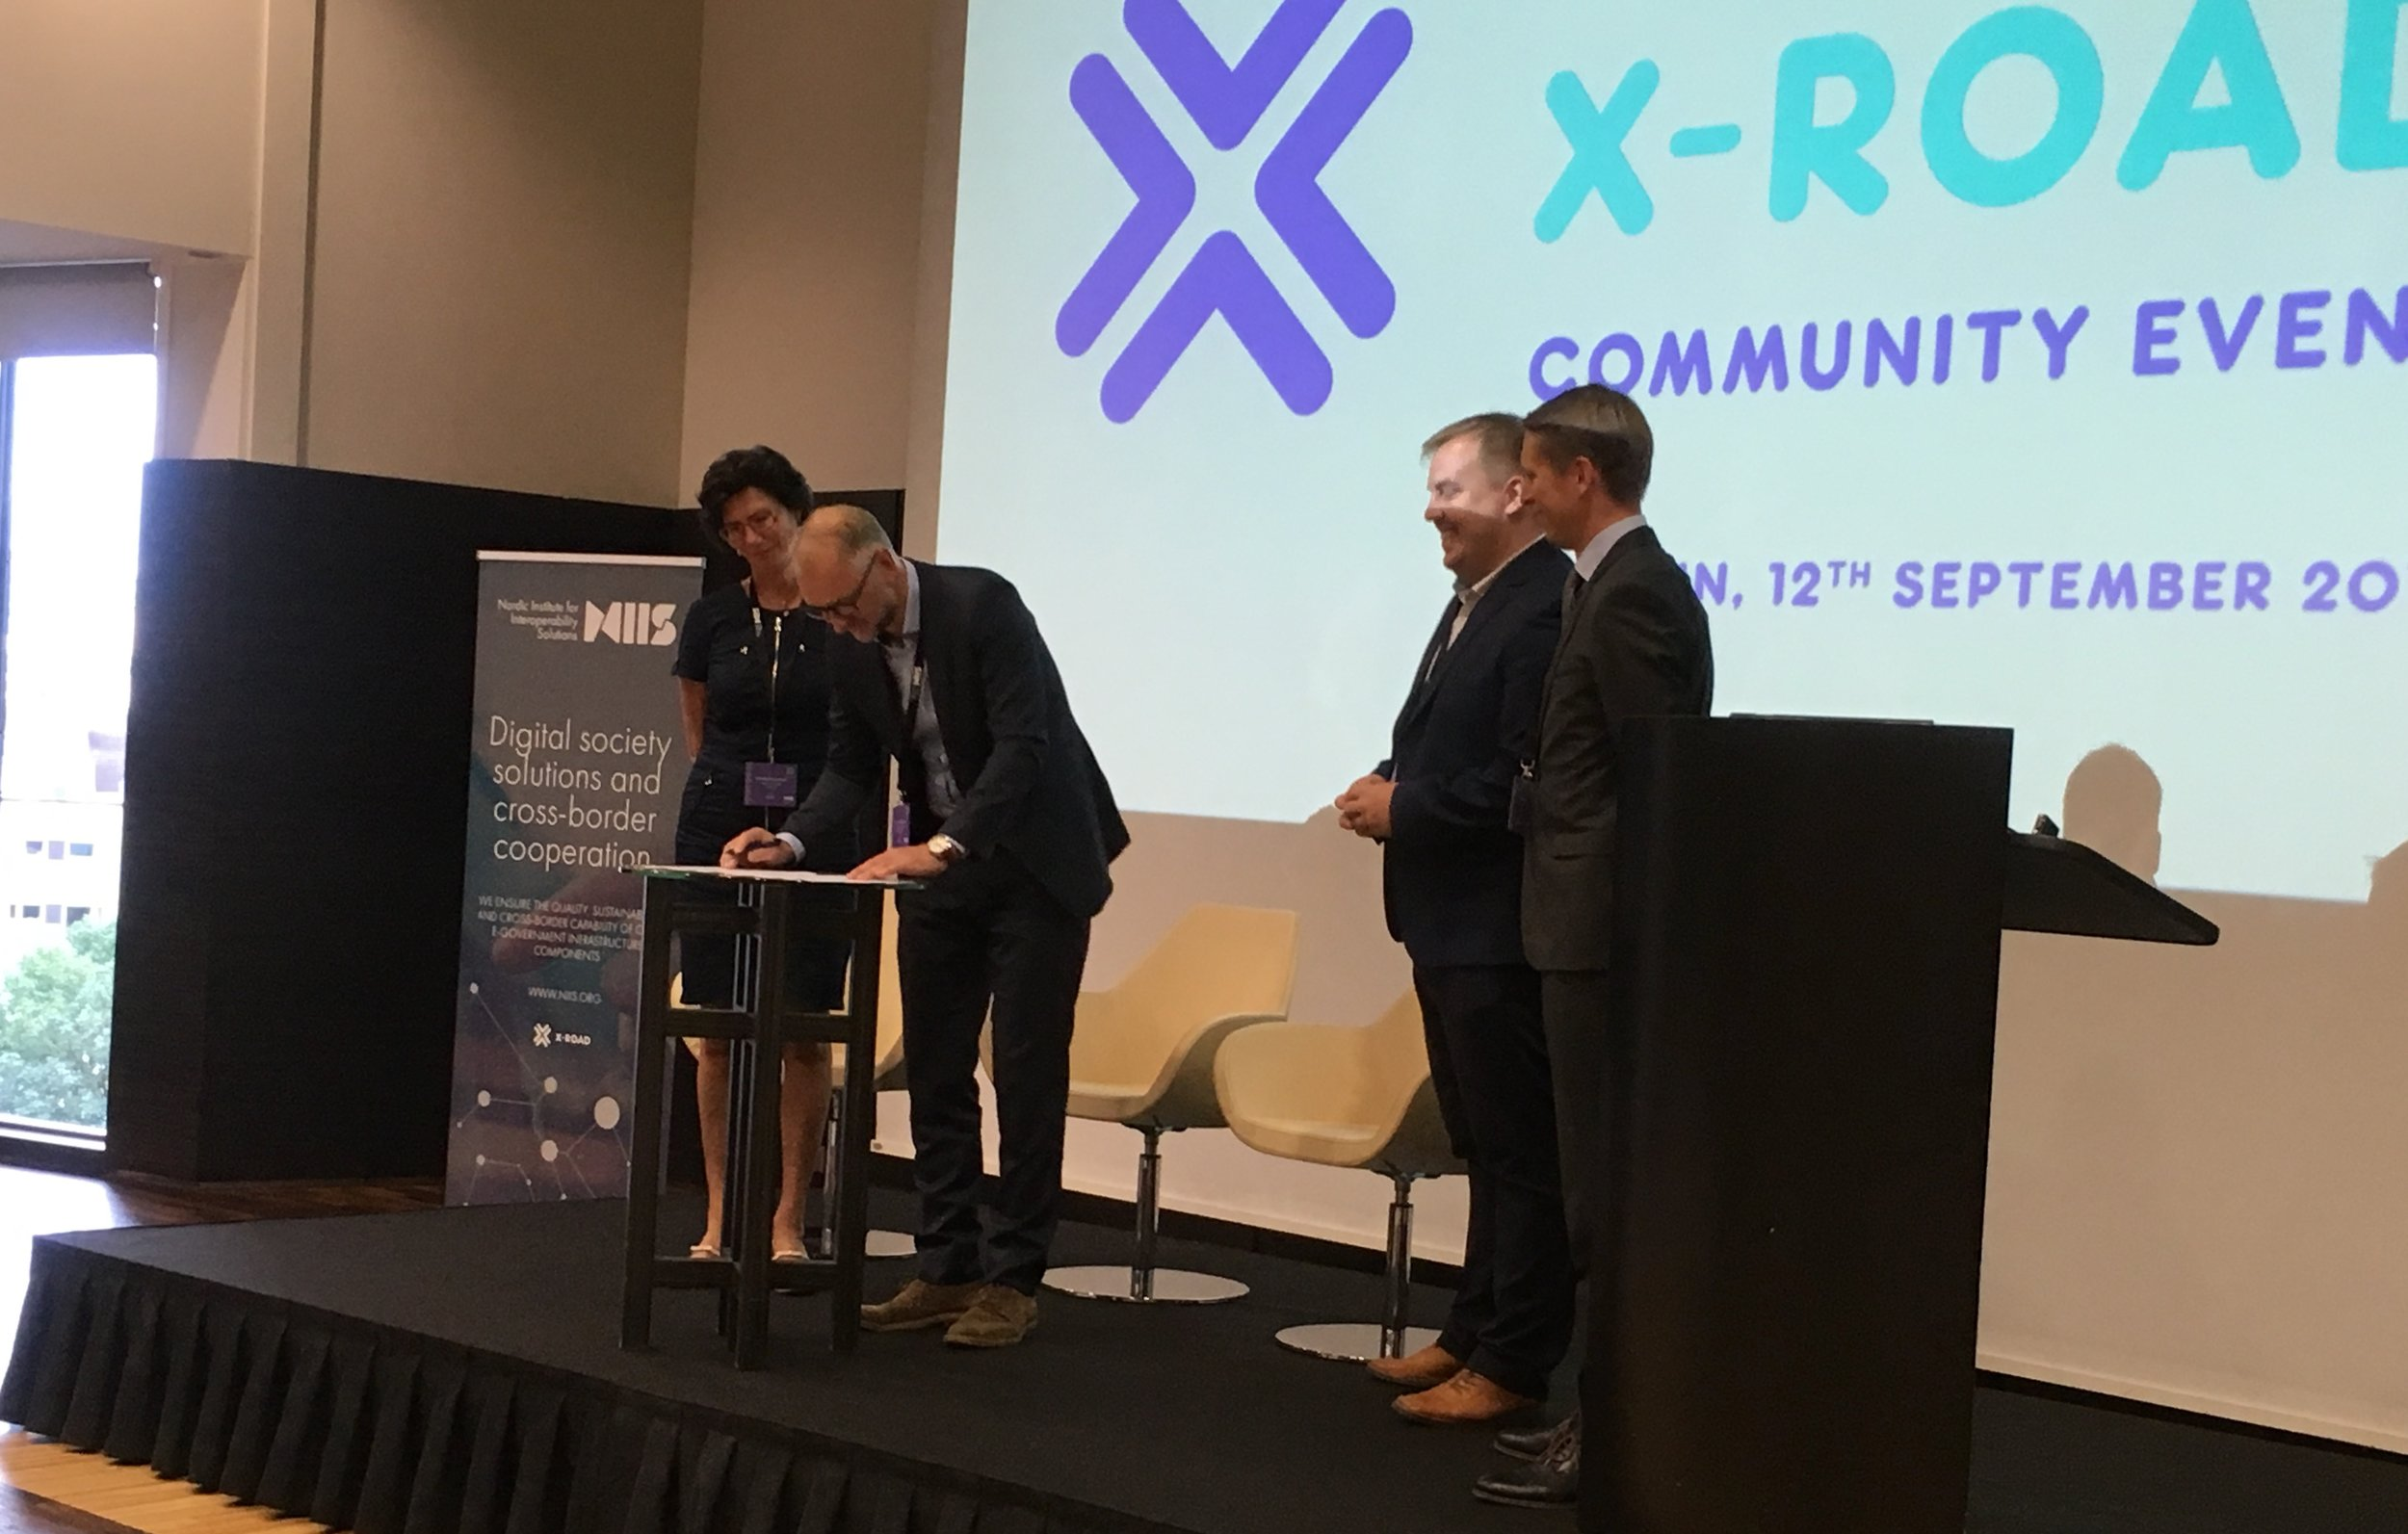 Einar Birkir Einarsson of Iceland signing the partnership agreement at X-Road Community Event 2018 in Tallinn, Estonia.